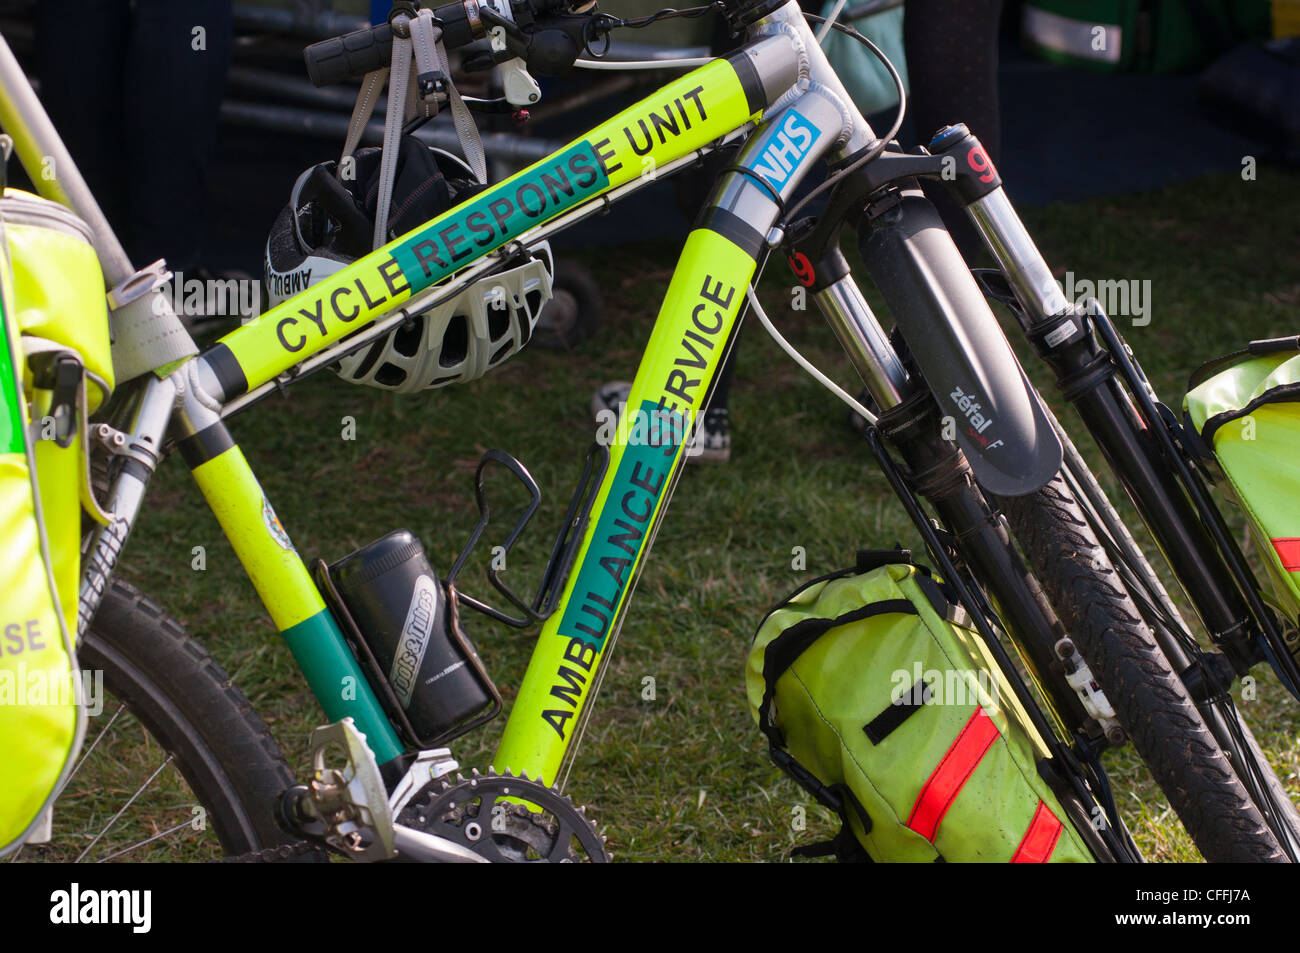 Bicycle Ambulance Uk Stock Photos Amp Bicycle Ambulance Uk Stock Images Alamy